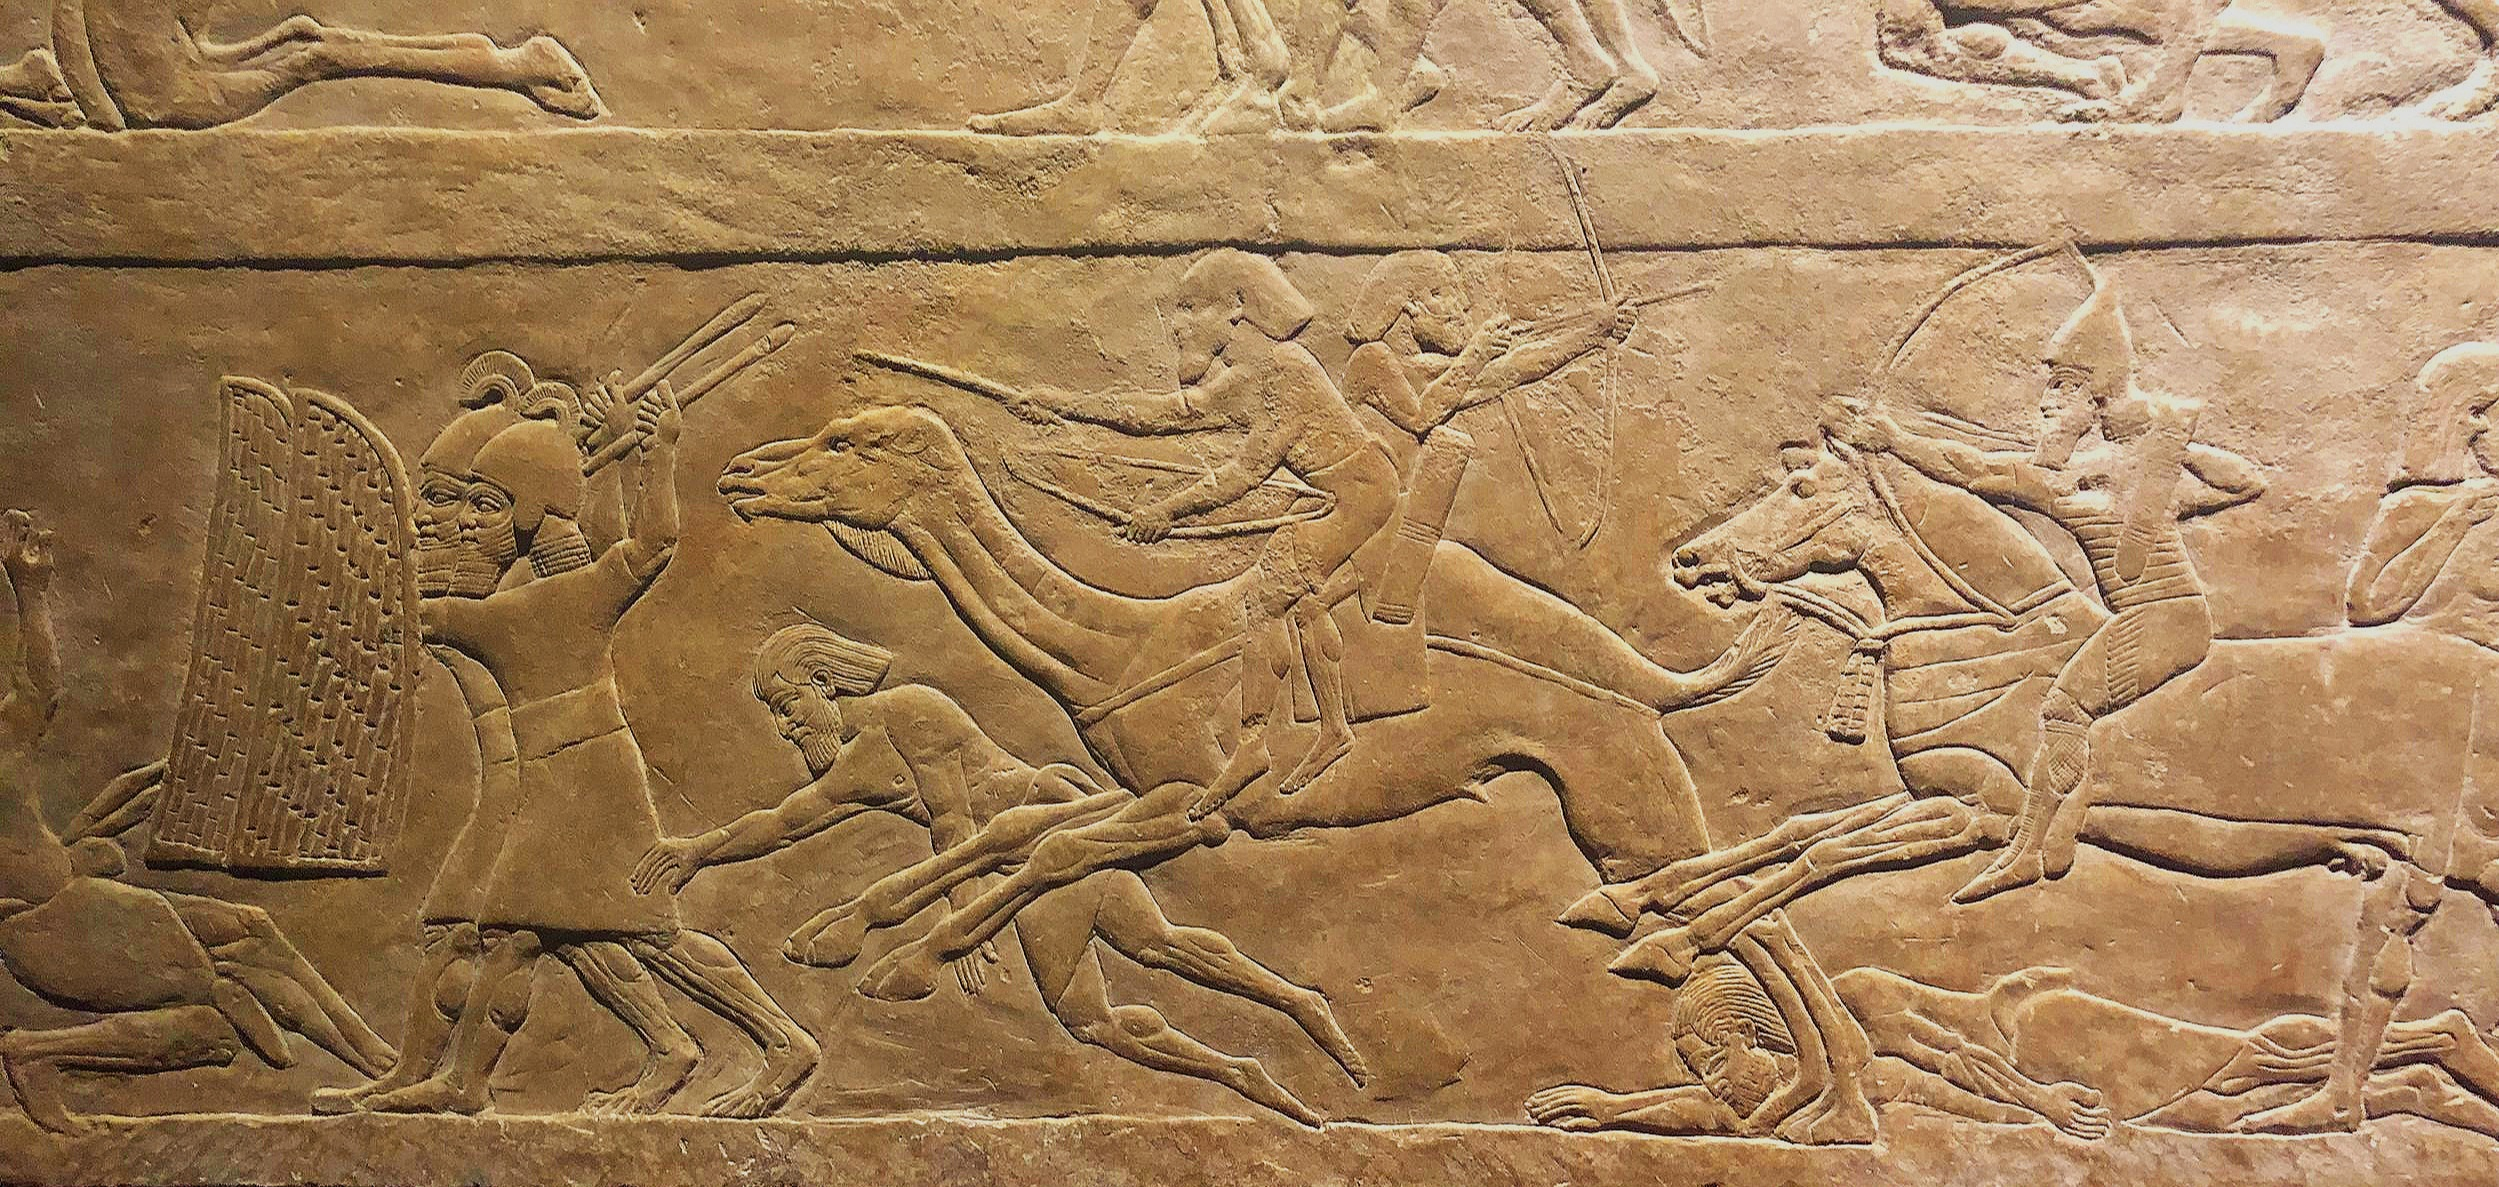 Cowardly Egyptians on camels fleeing Ashurbanipal's mighty forces!